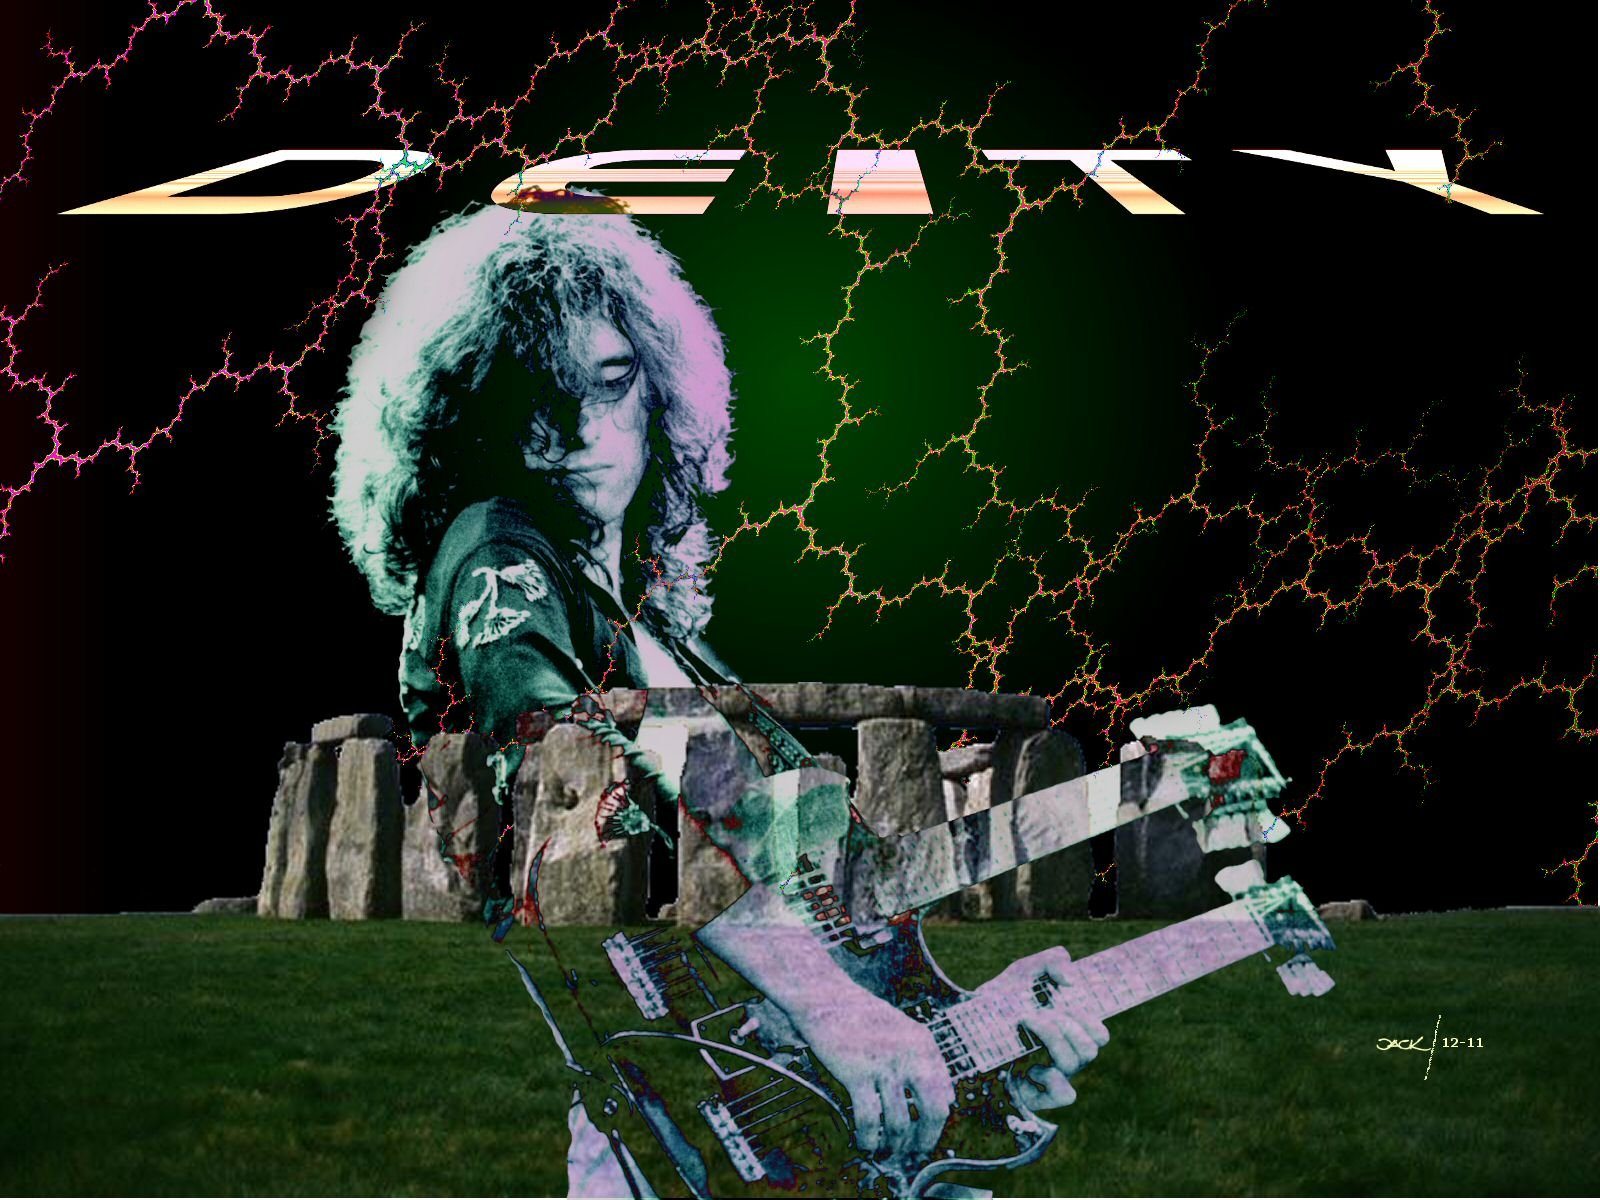 Best Jimmy Page Wallpaper ID294401 For High Resolution Hd 1600x1200 PC